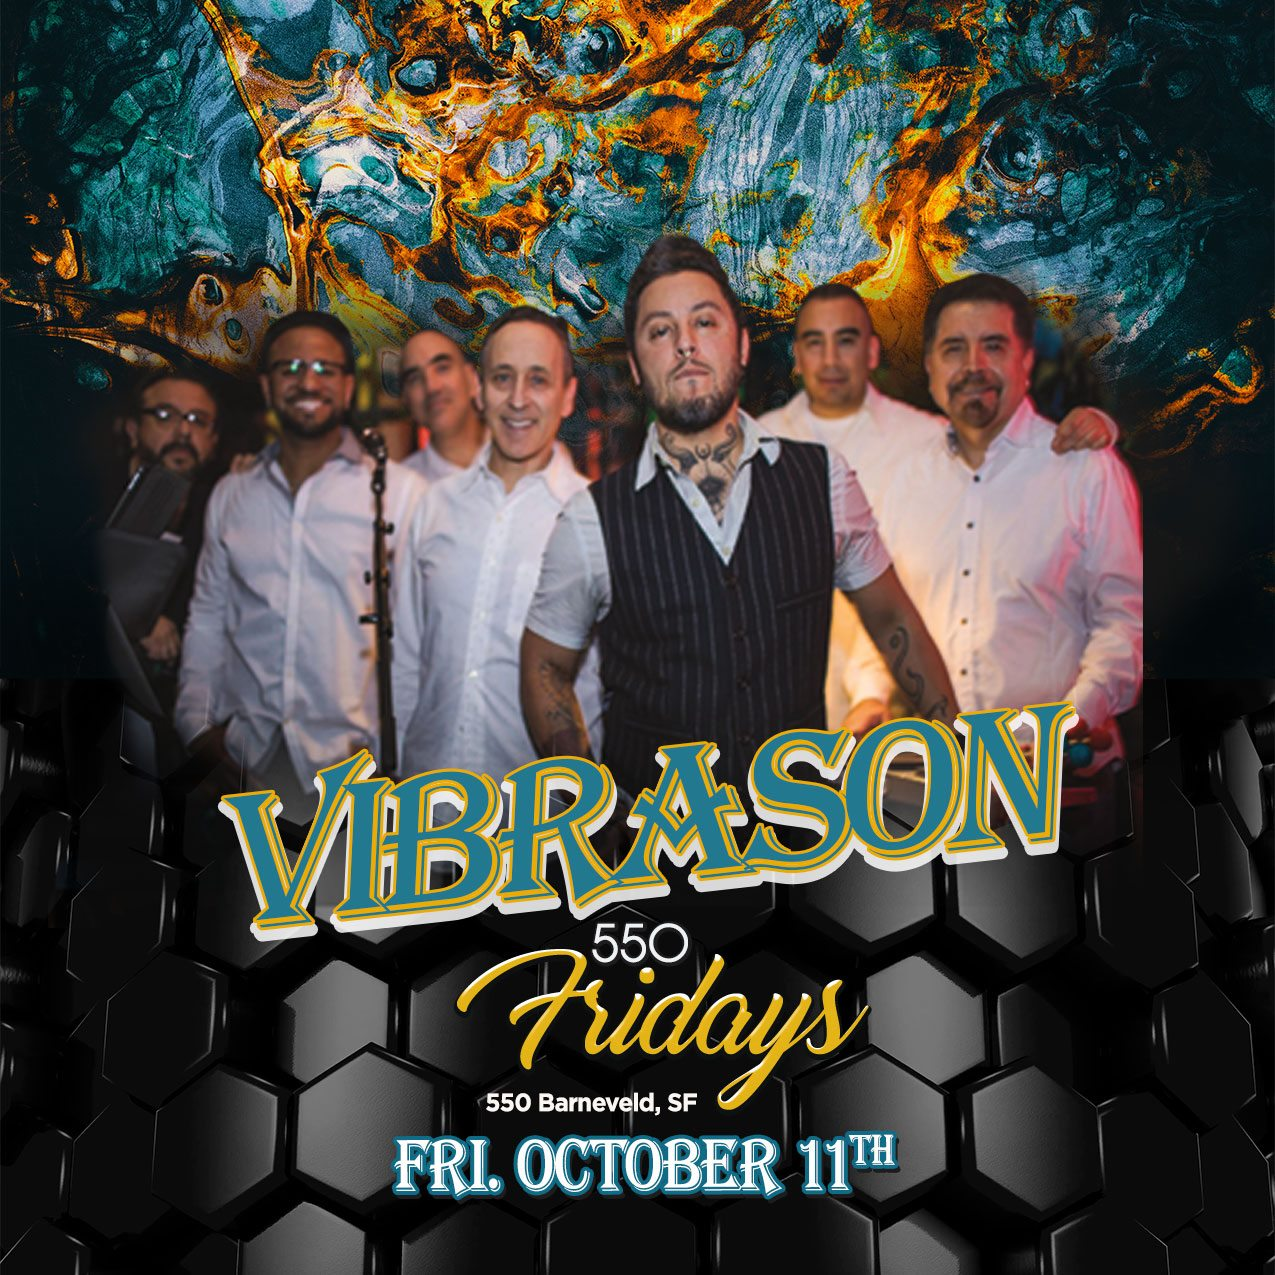 VibraSON returns to Dance Fridays - biggest dance party in the Bay Area - Oct 11, 2019